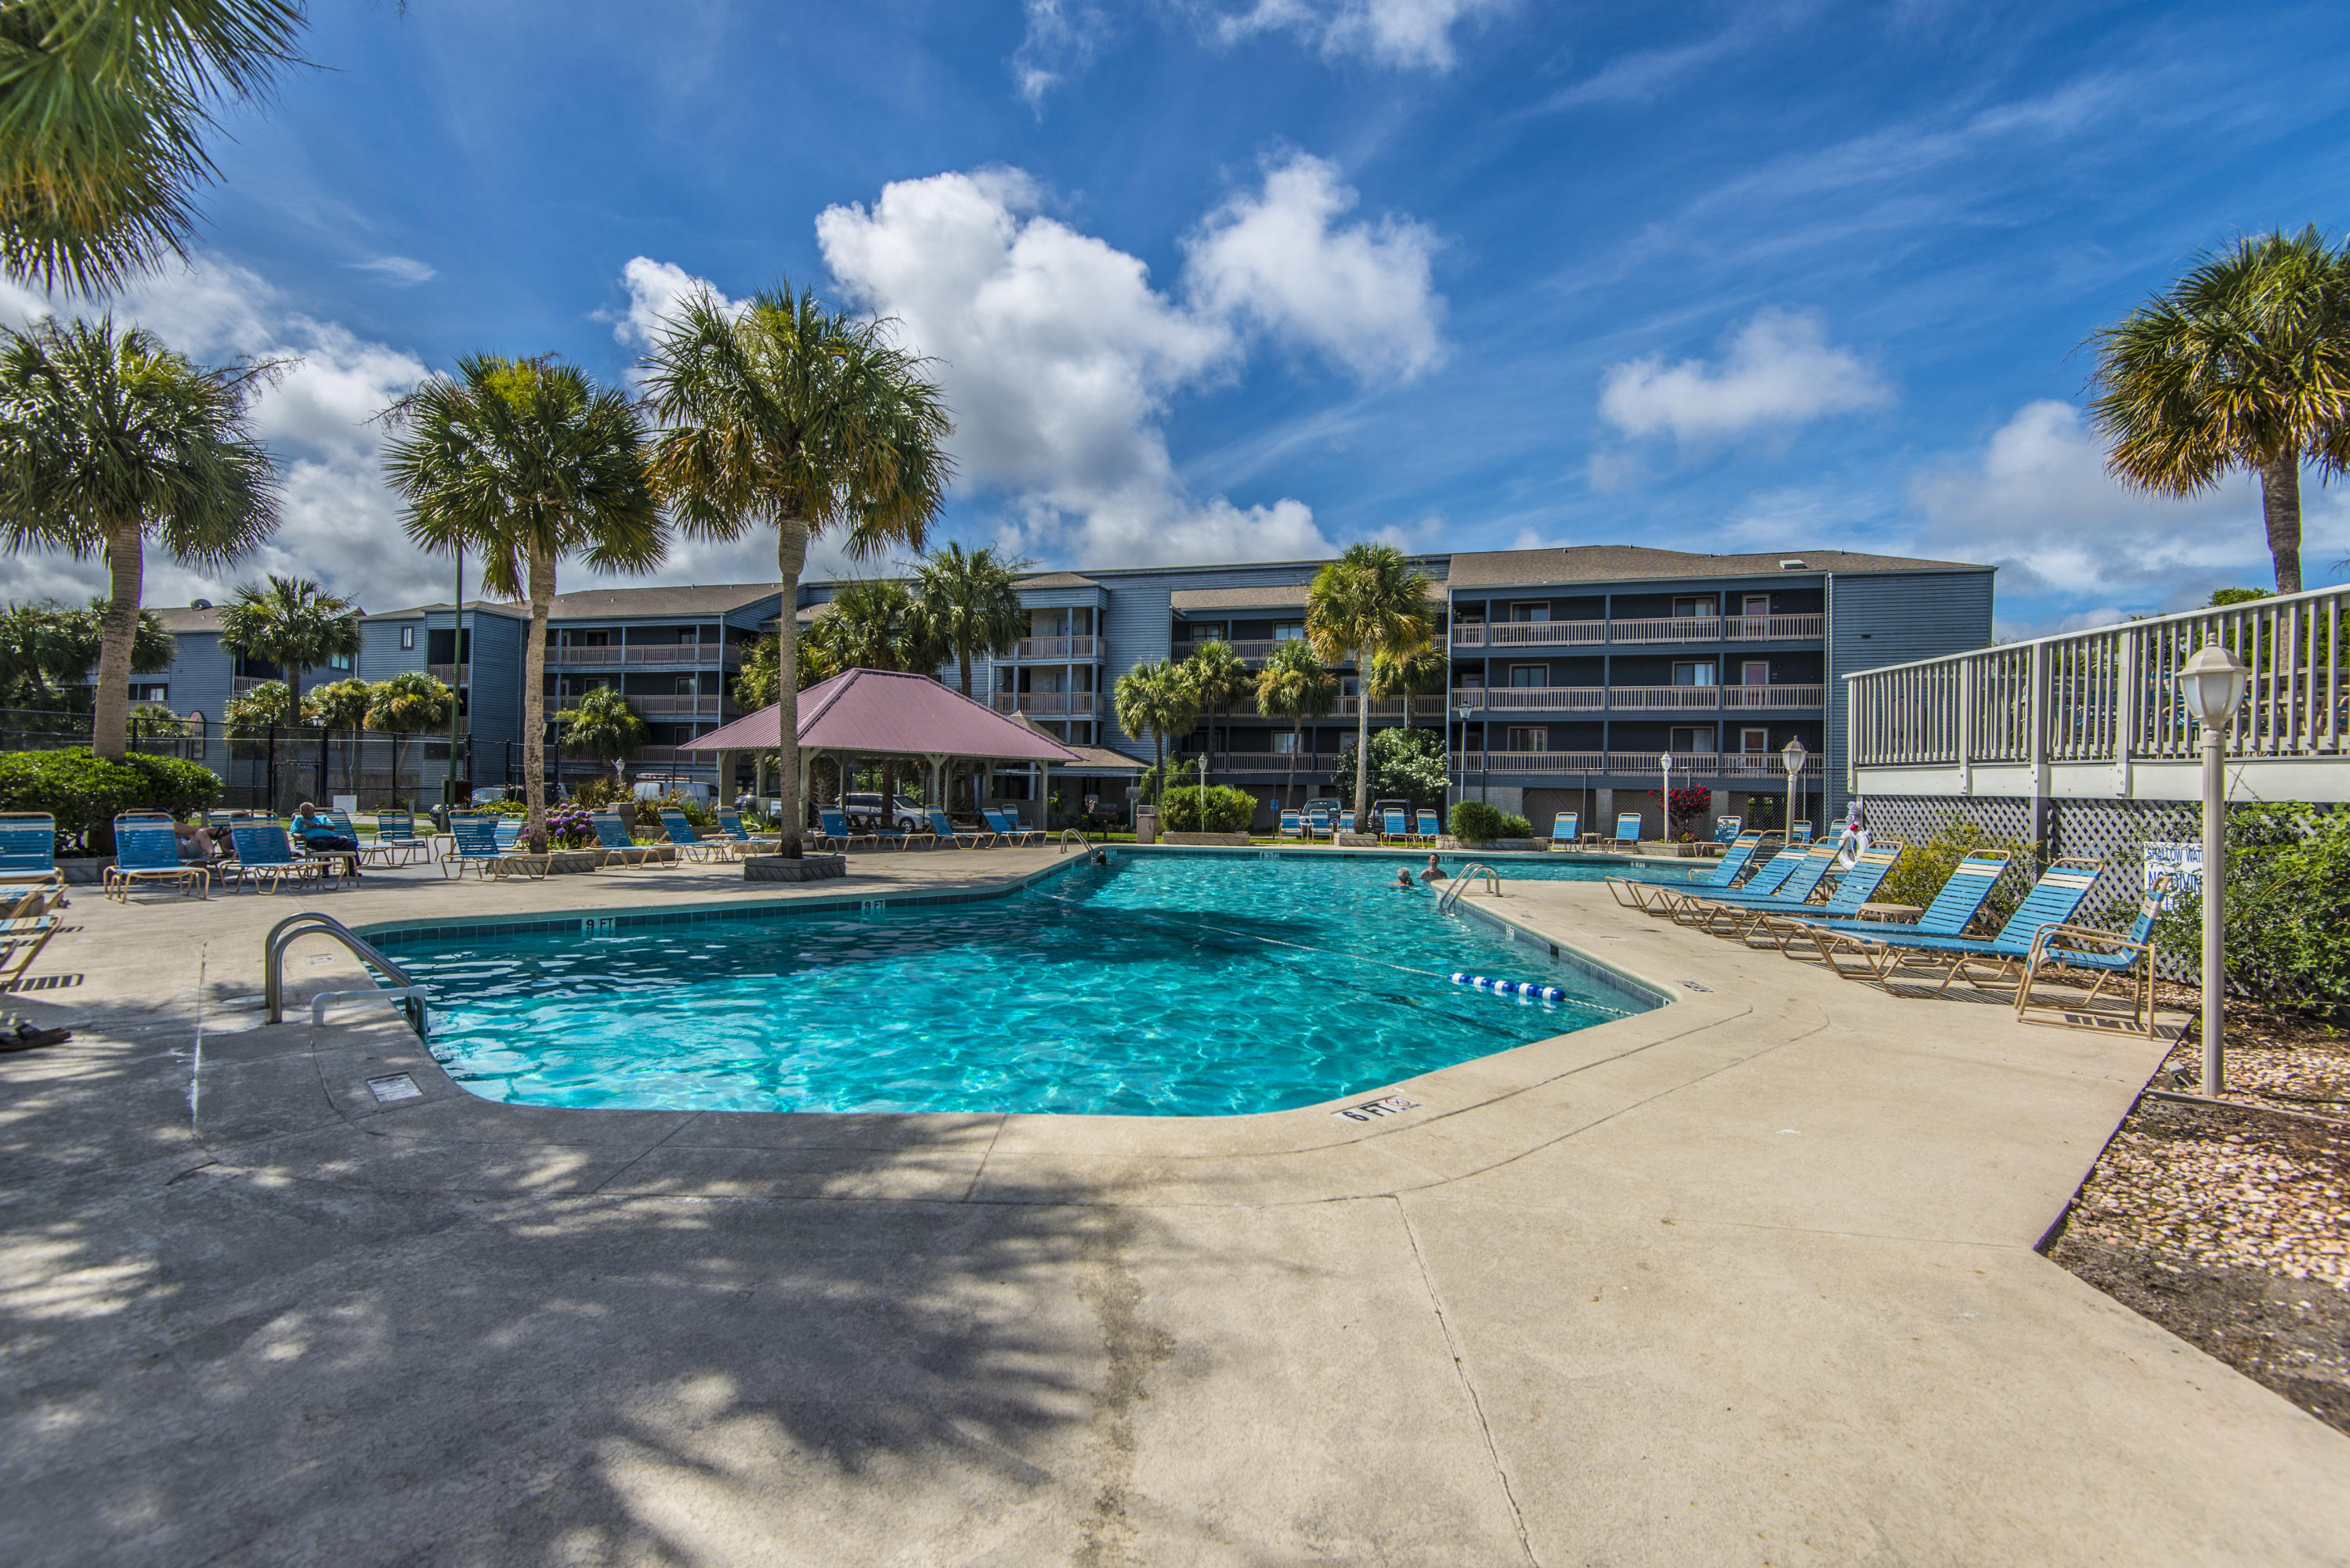 Mariners Cay Homes For Sale - 60 Mariners Cay, Folly Beach, SC - 8